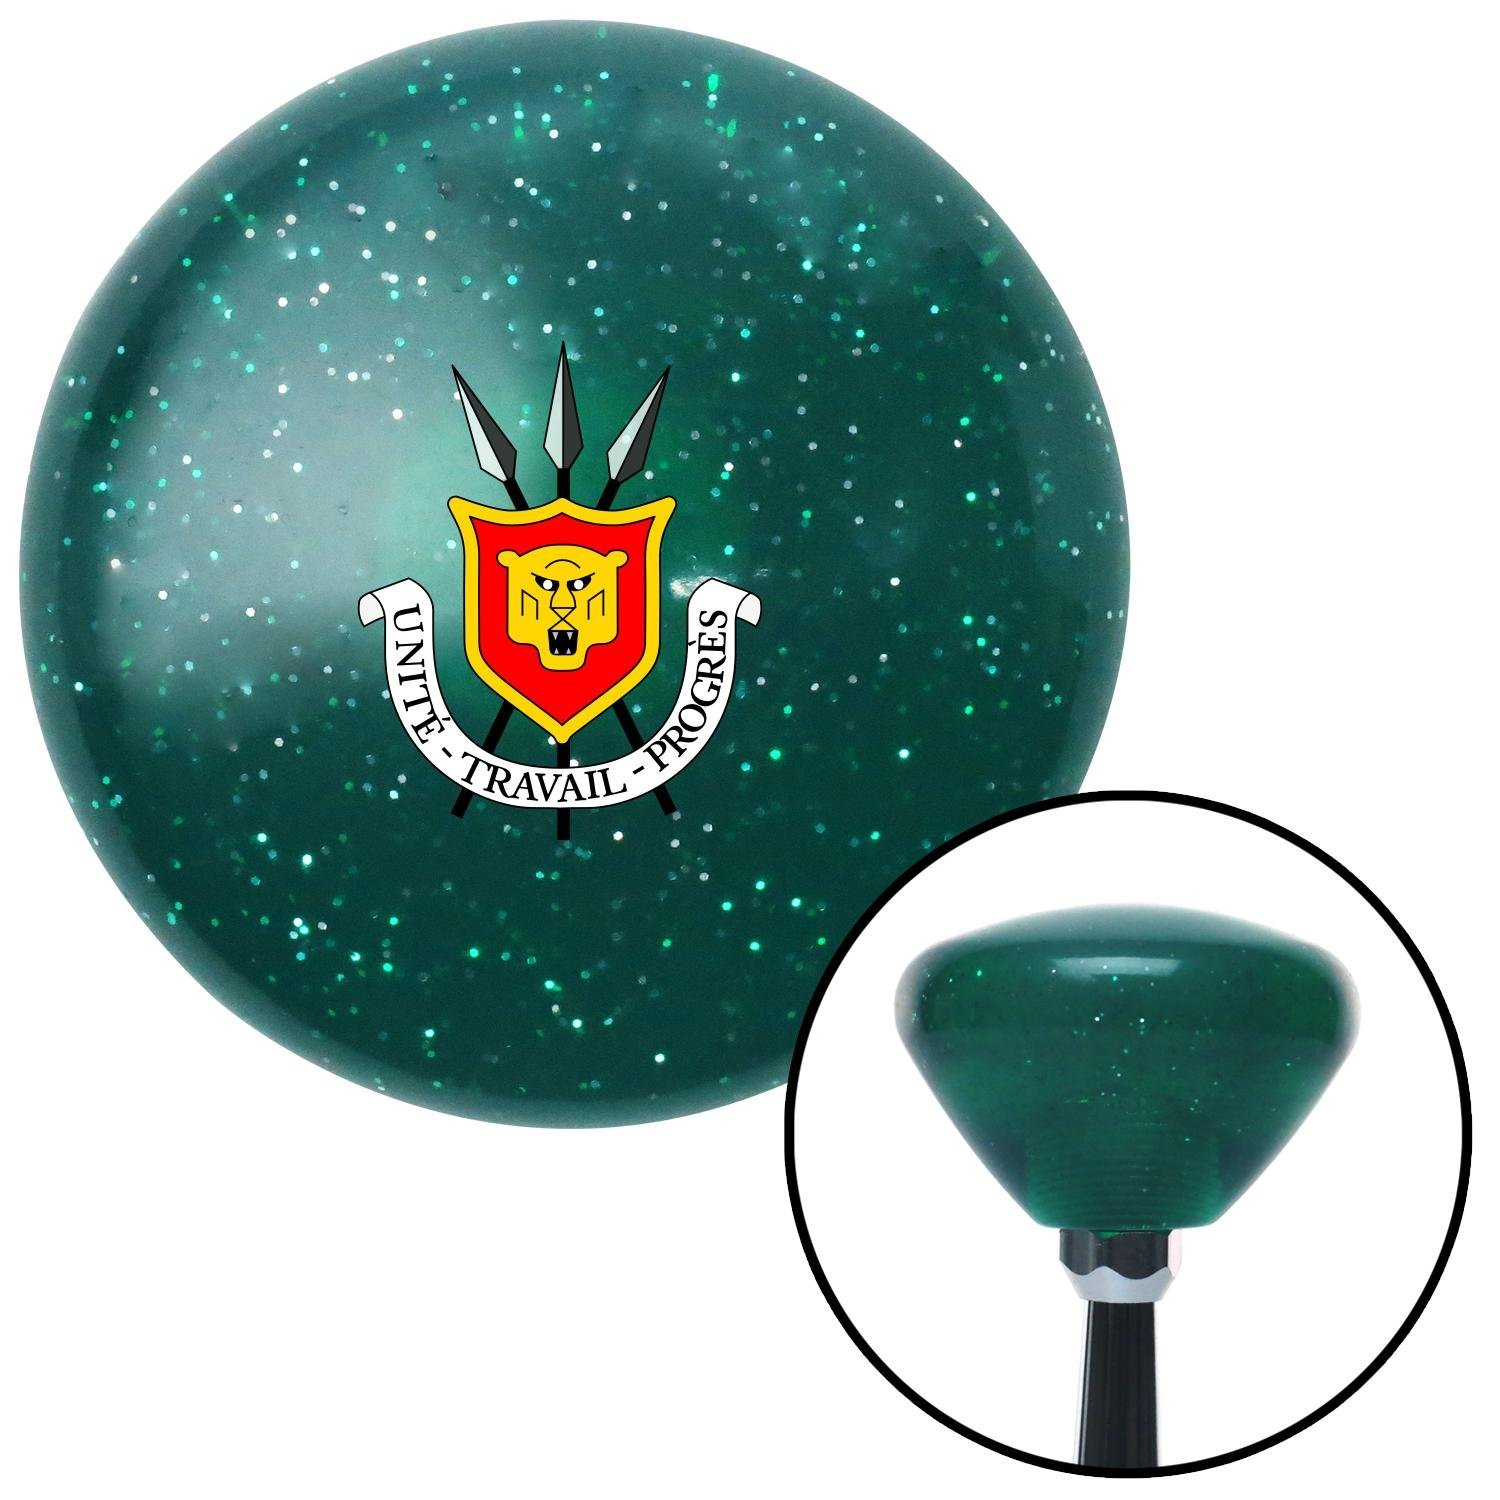 American Shifter 209234 Green Retro Metal Flake Shift Knob with M16 x 1.5 Insert Burundi Coat of Arms